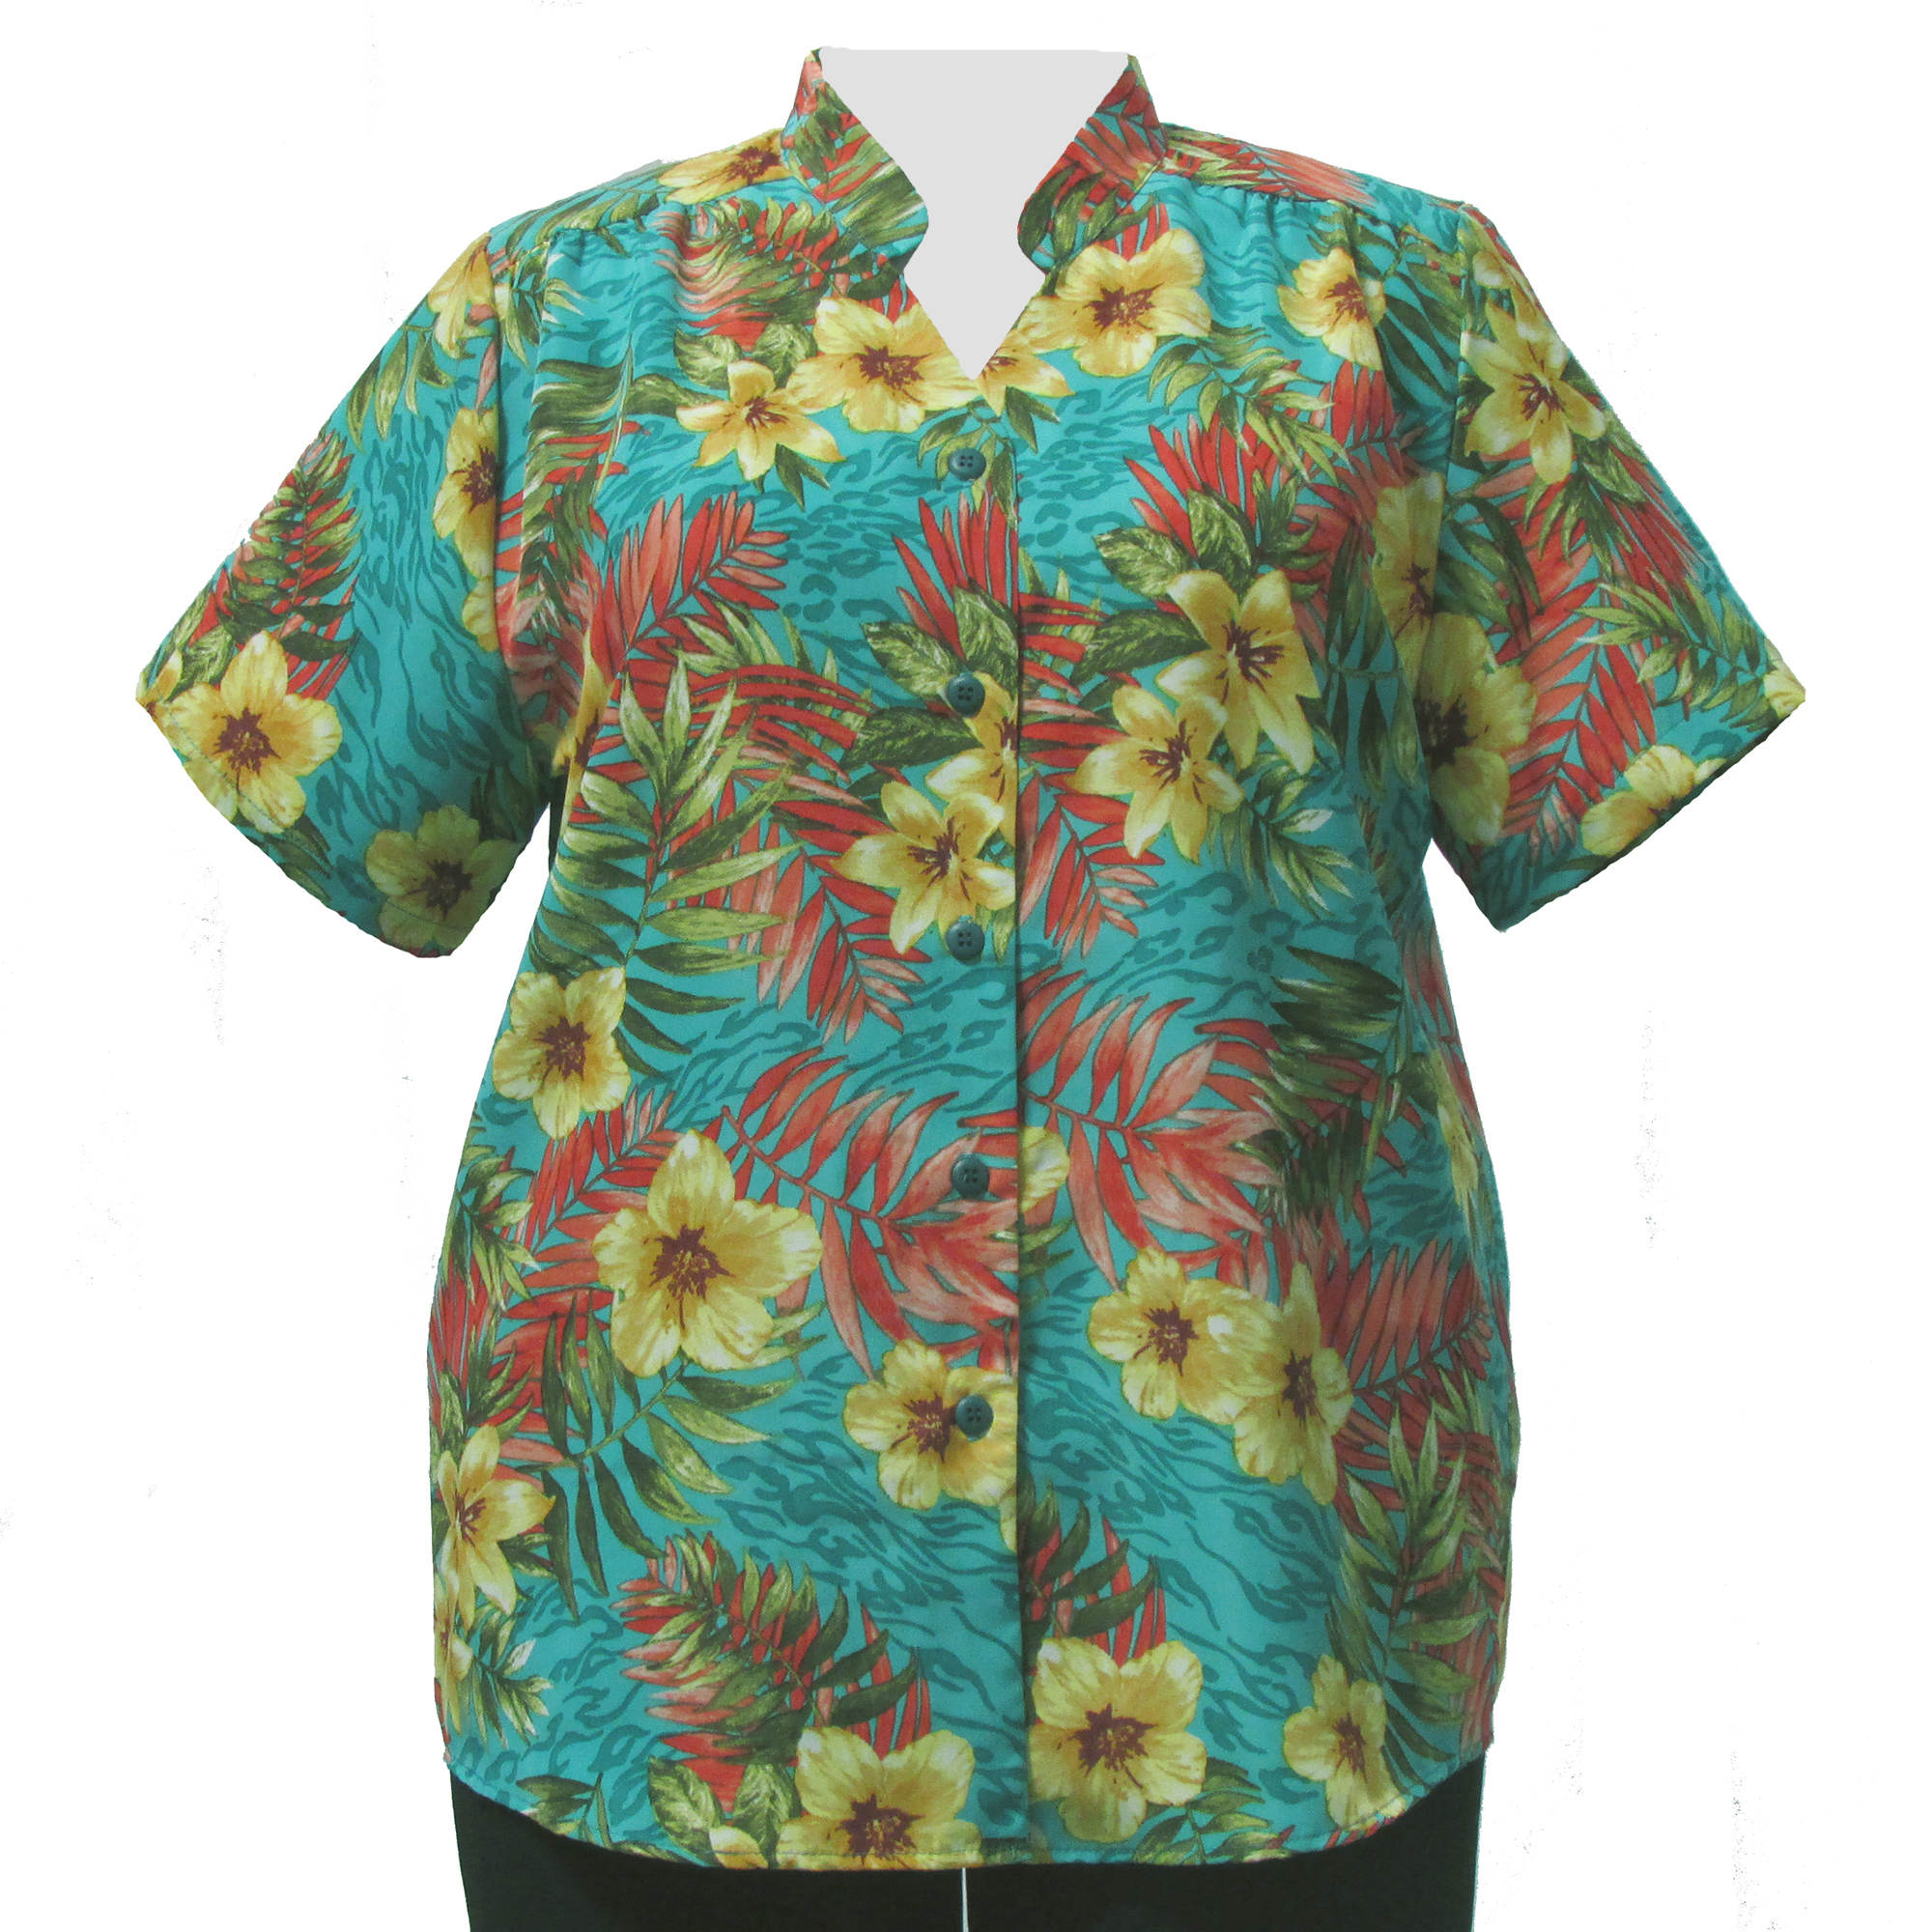 A Personal Touch Teal Hibiscus Mandarin Collar V-Neck Tunic Plus Size Woman's Blouse at Sears.com